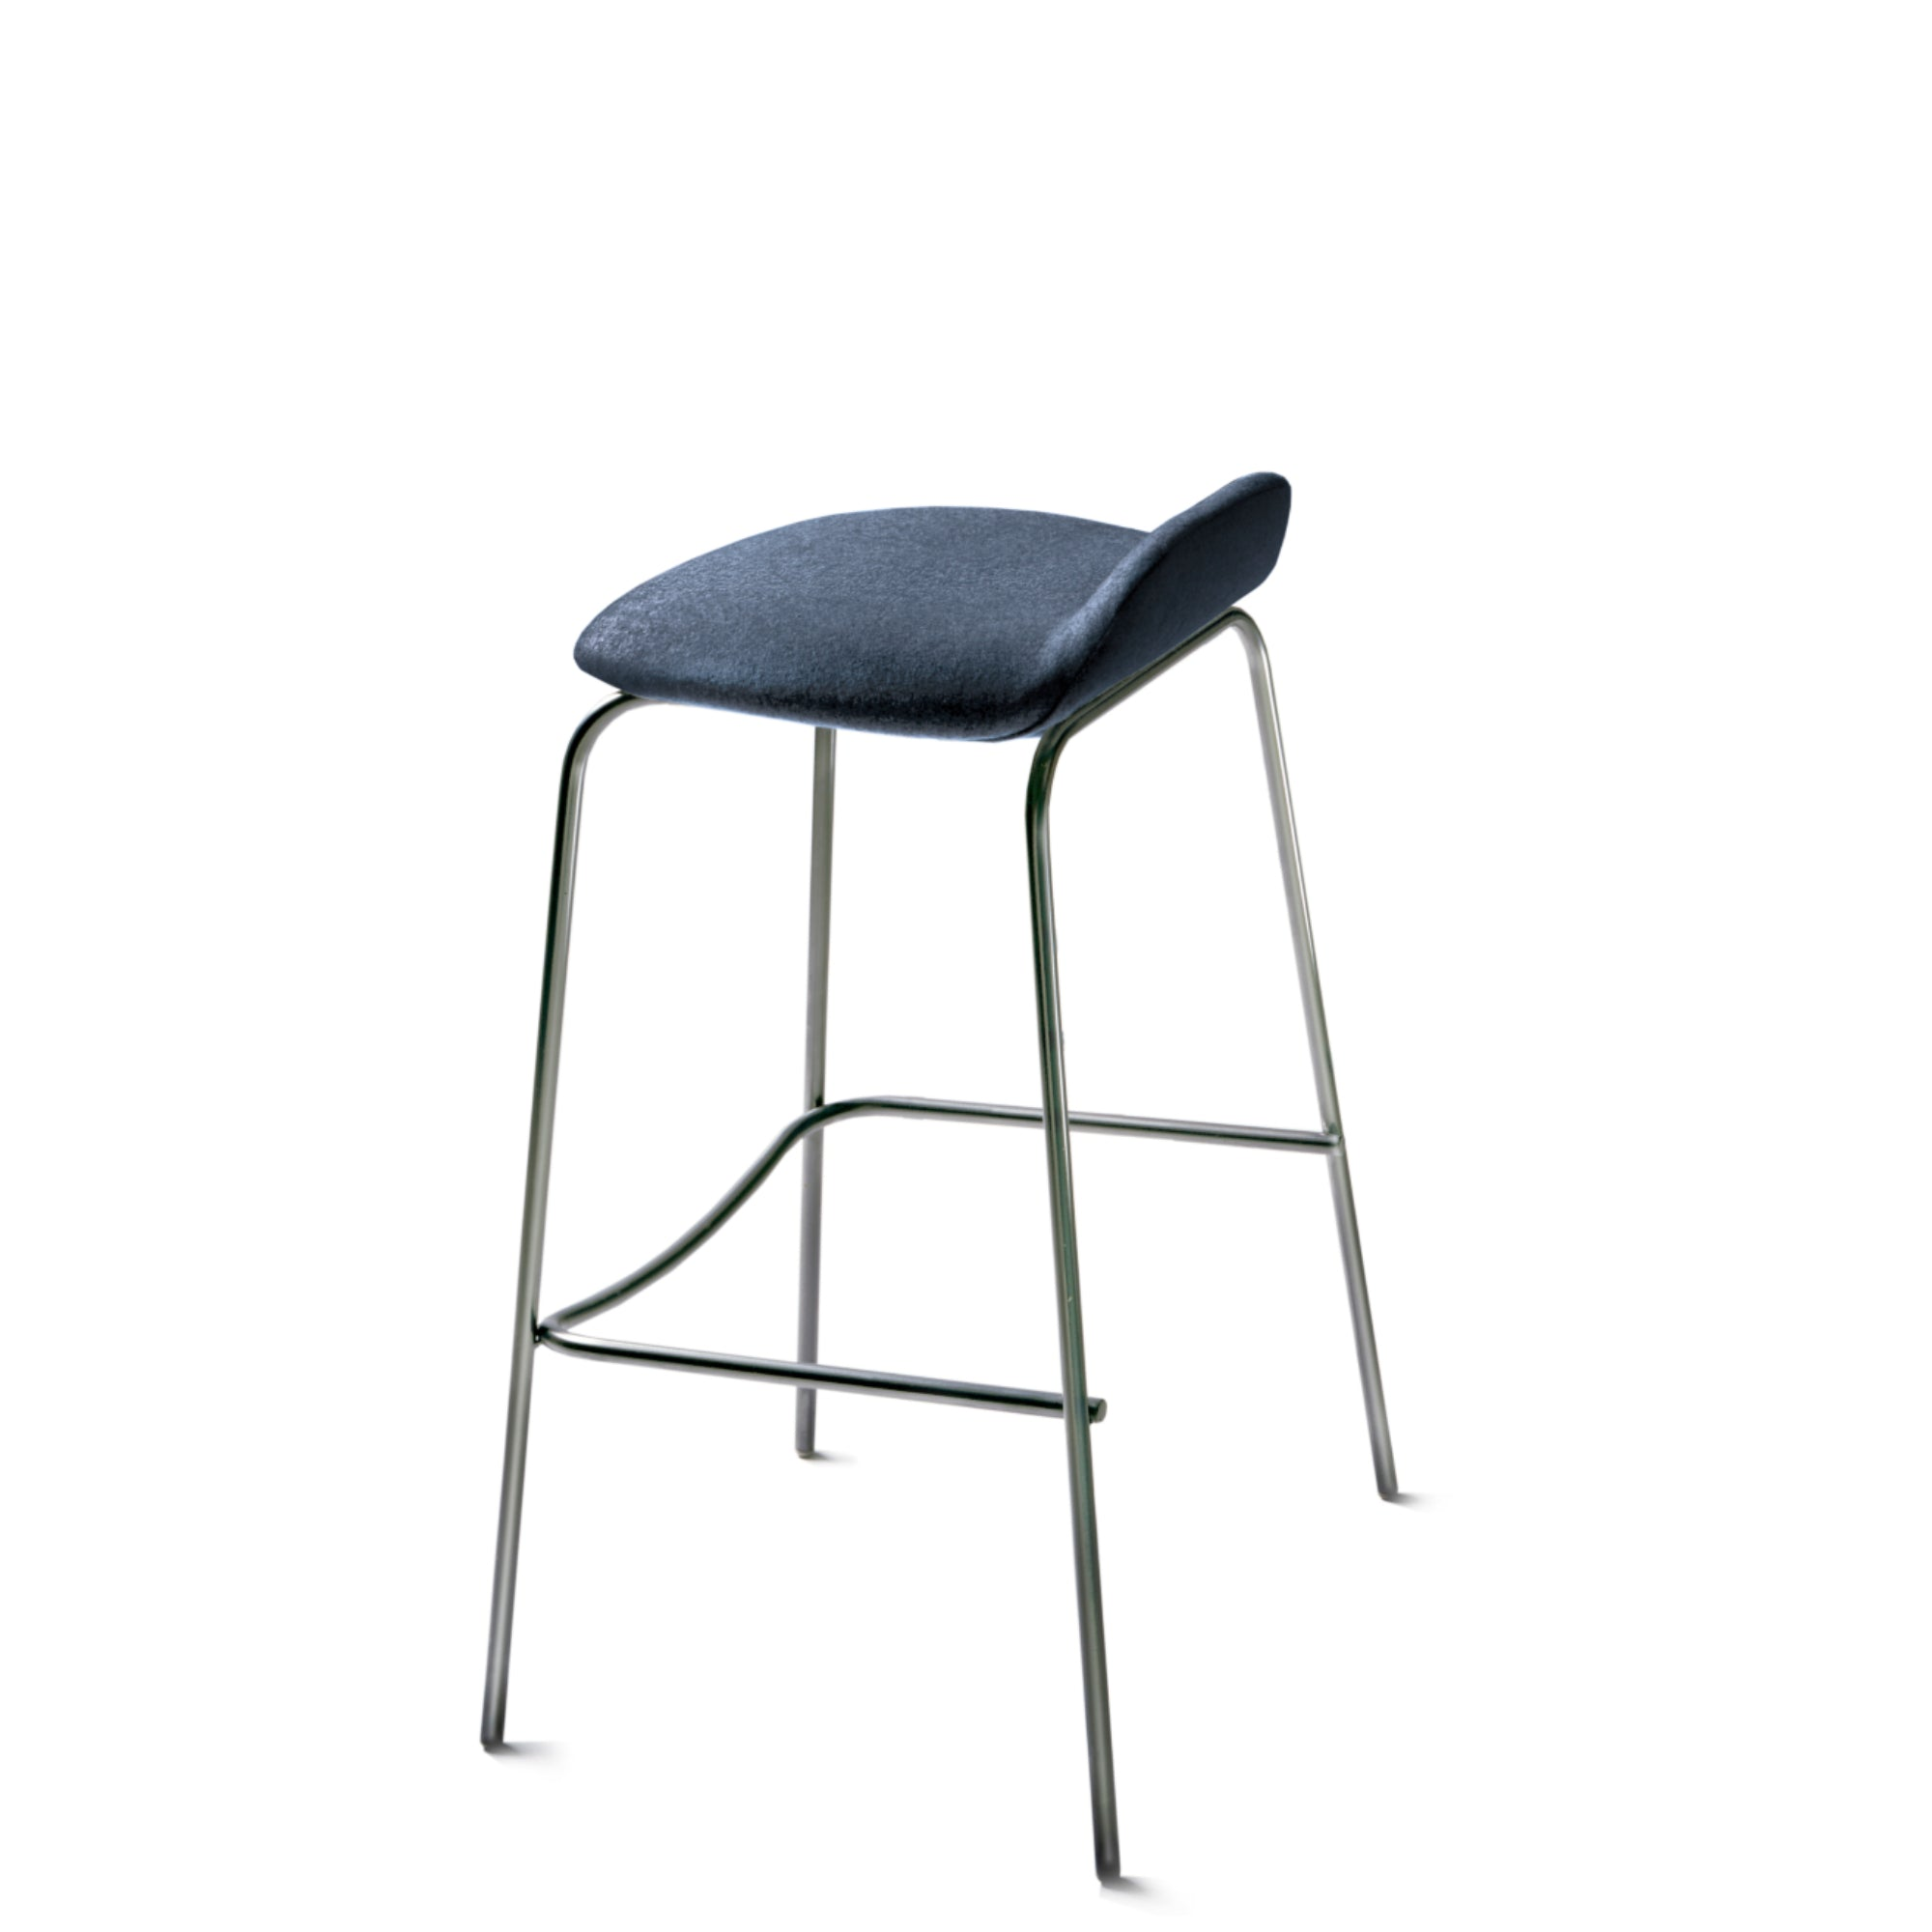 New Design Group Coffee Stool Fully Upholstered Low Back Edinburgh CUZ1Y